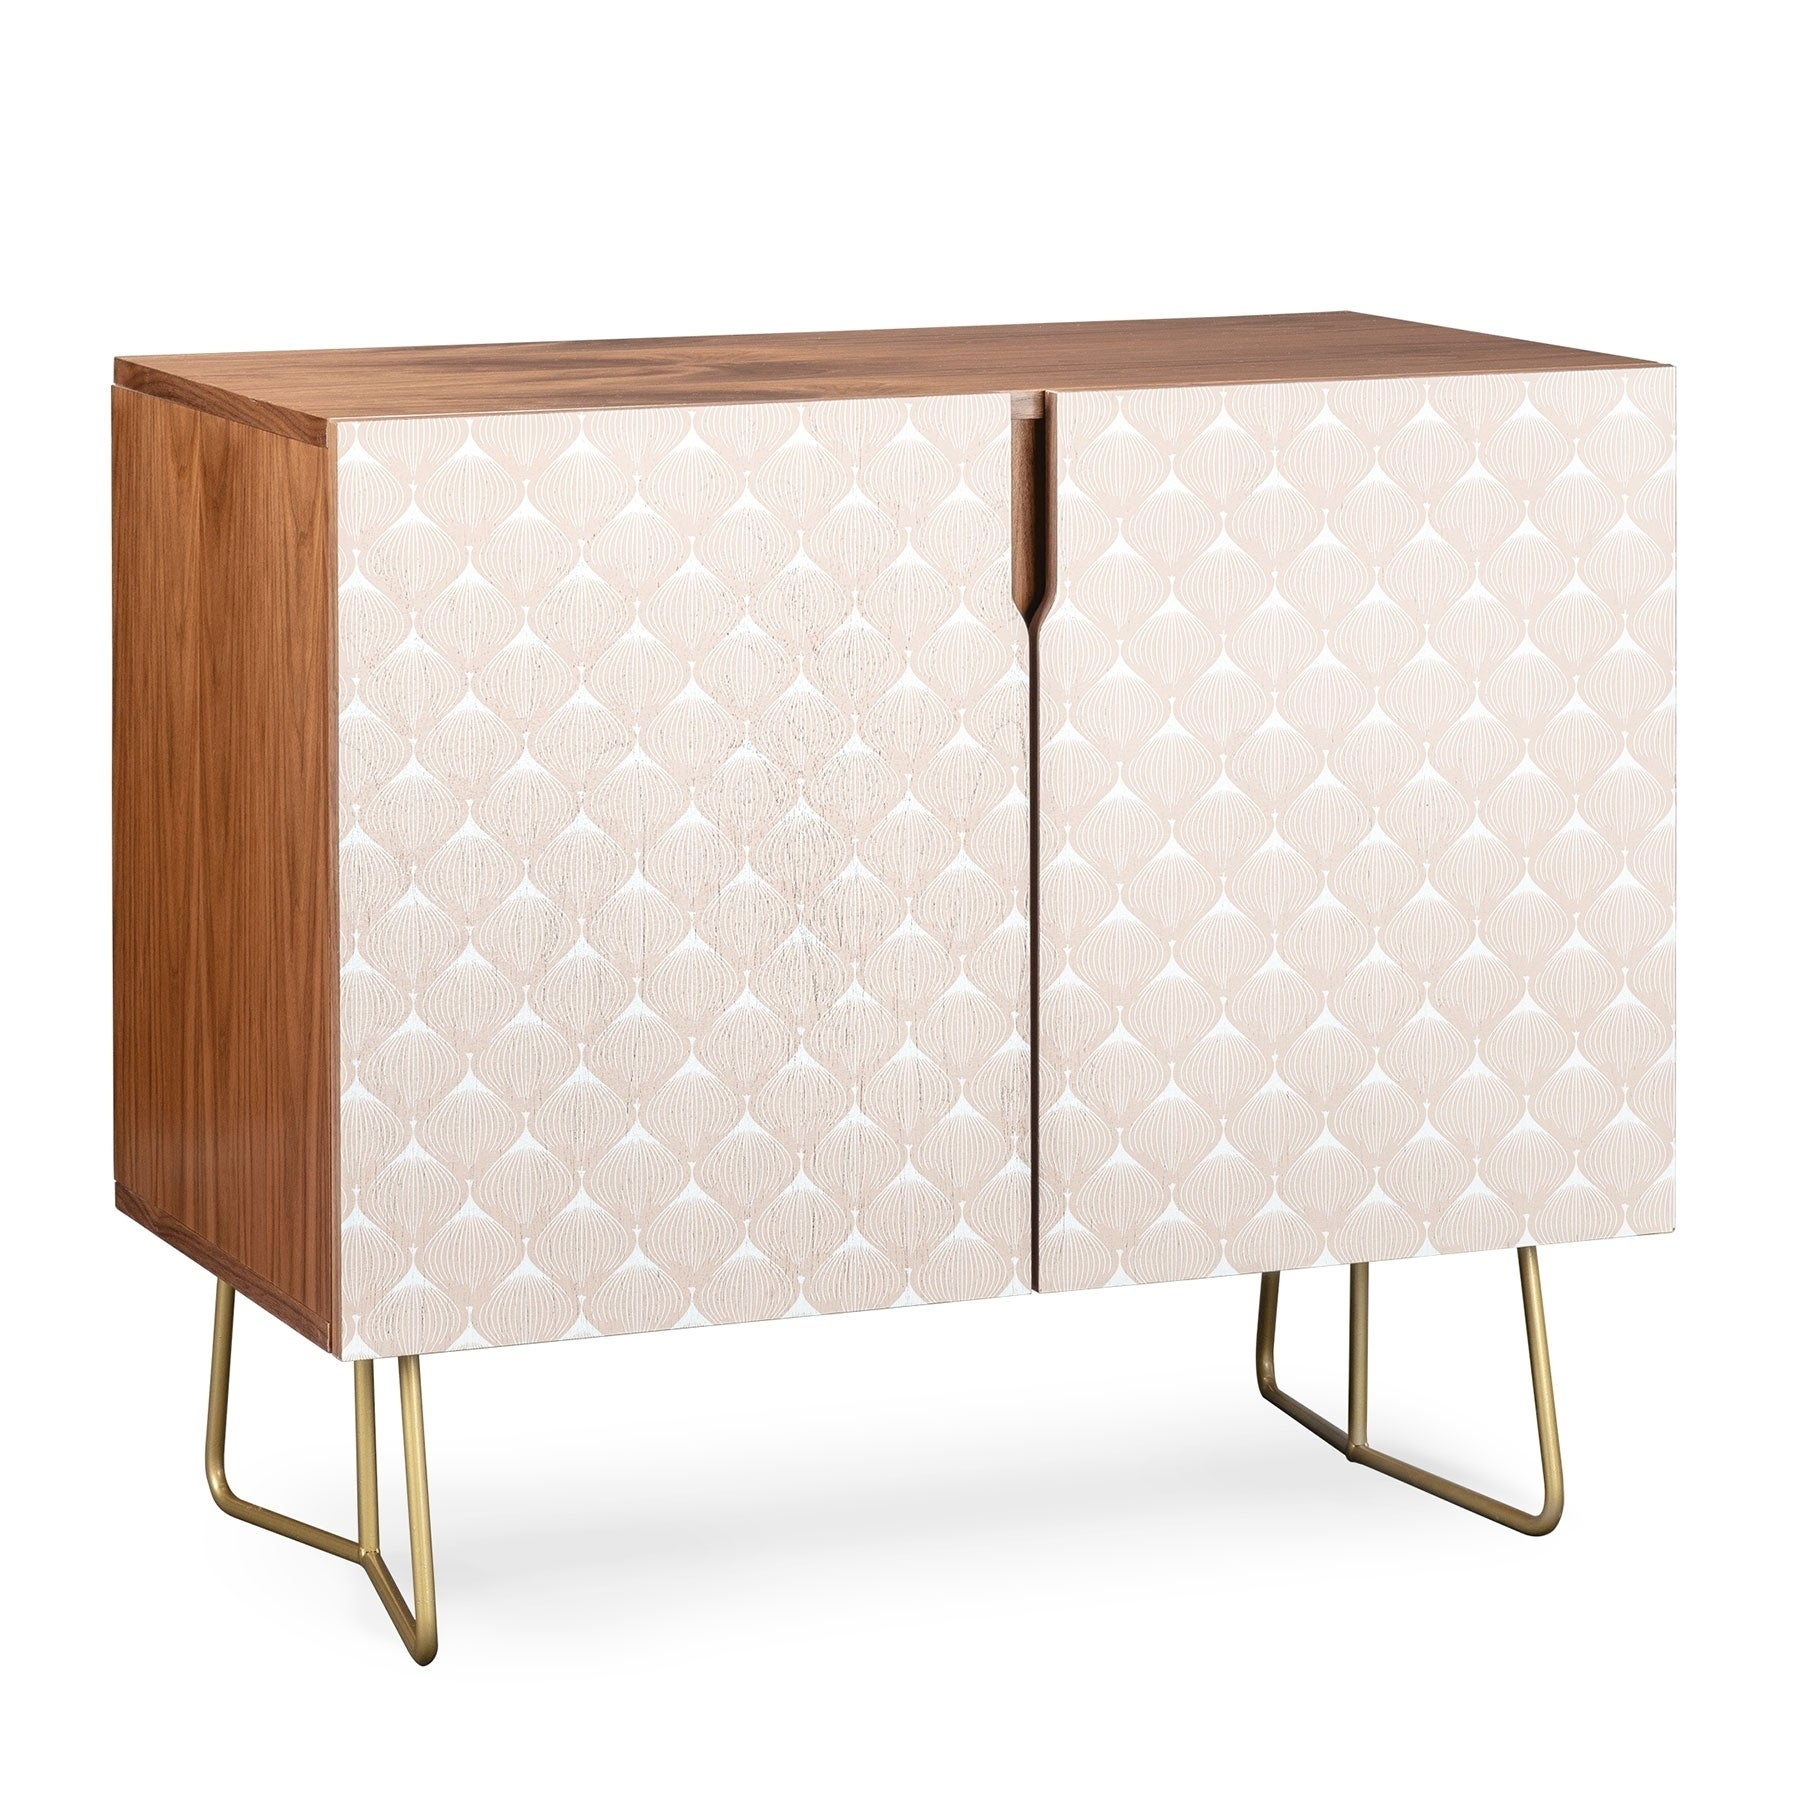 Deny Designs Pale Pink Bulbs Credenza (Birch Or Walnut, 2 Leg Options) Pertaining To Pale Pink Bulbs Credenzas (Gallery 5 of 30)